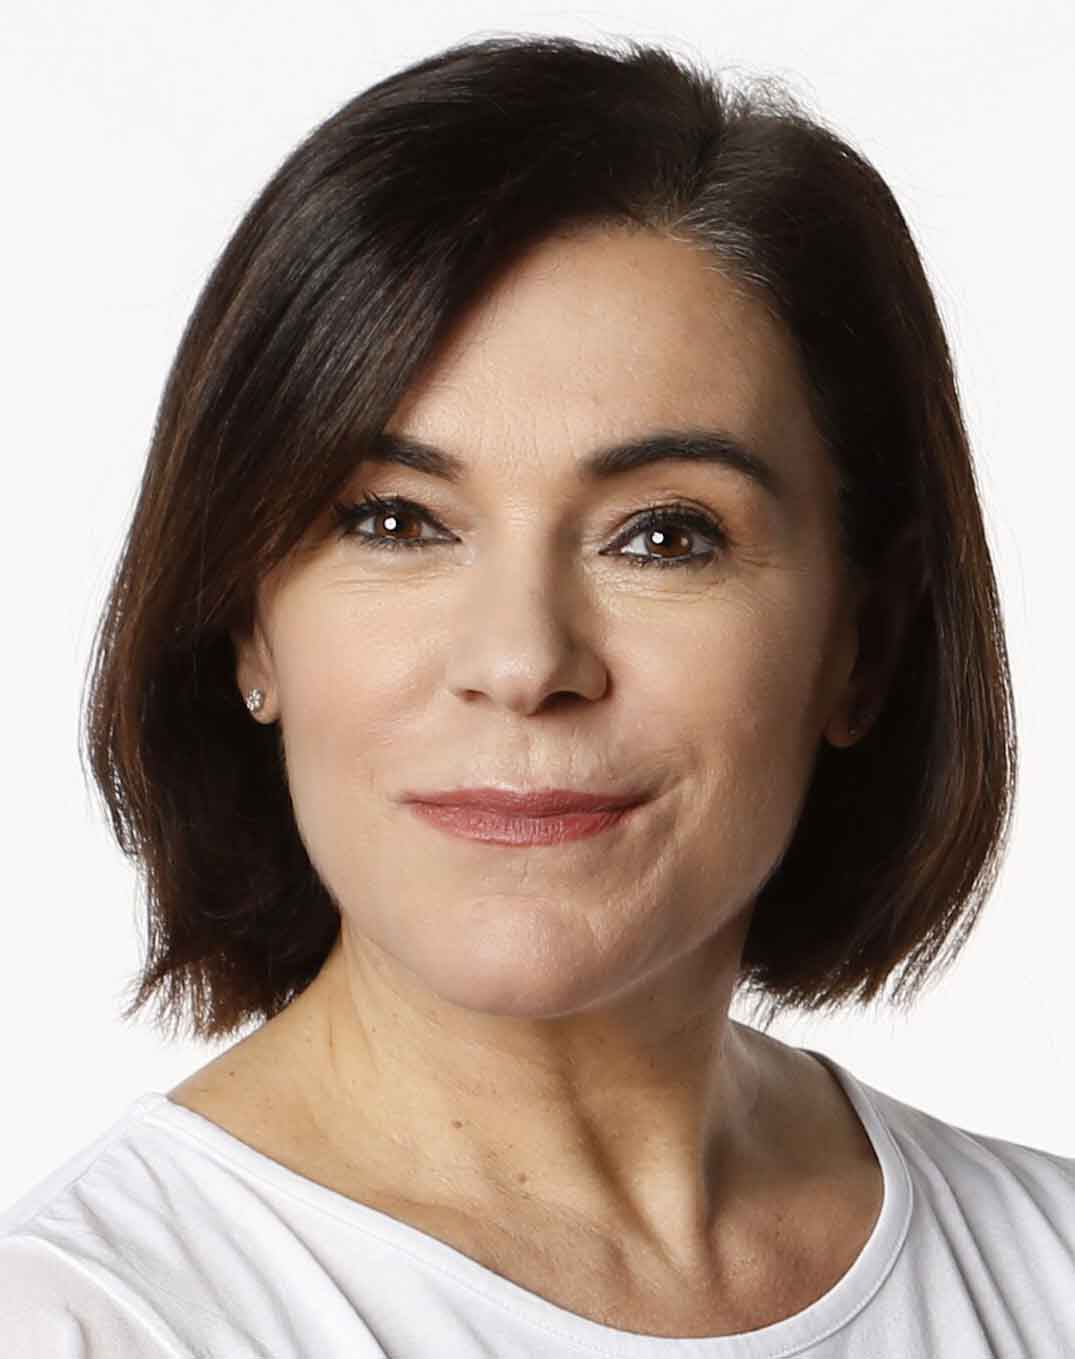 headshot of Elisabetta GUALMINI